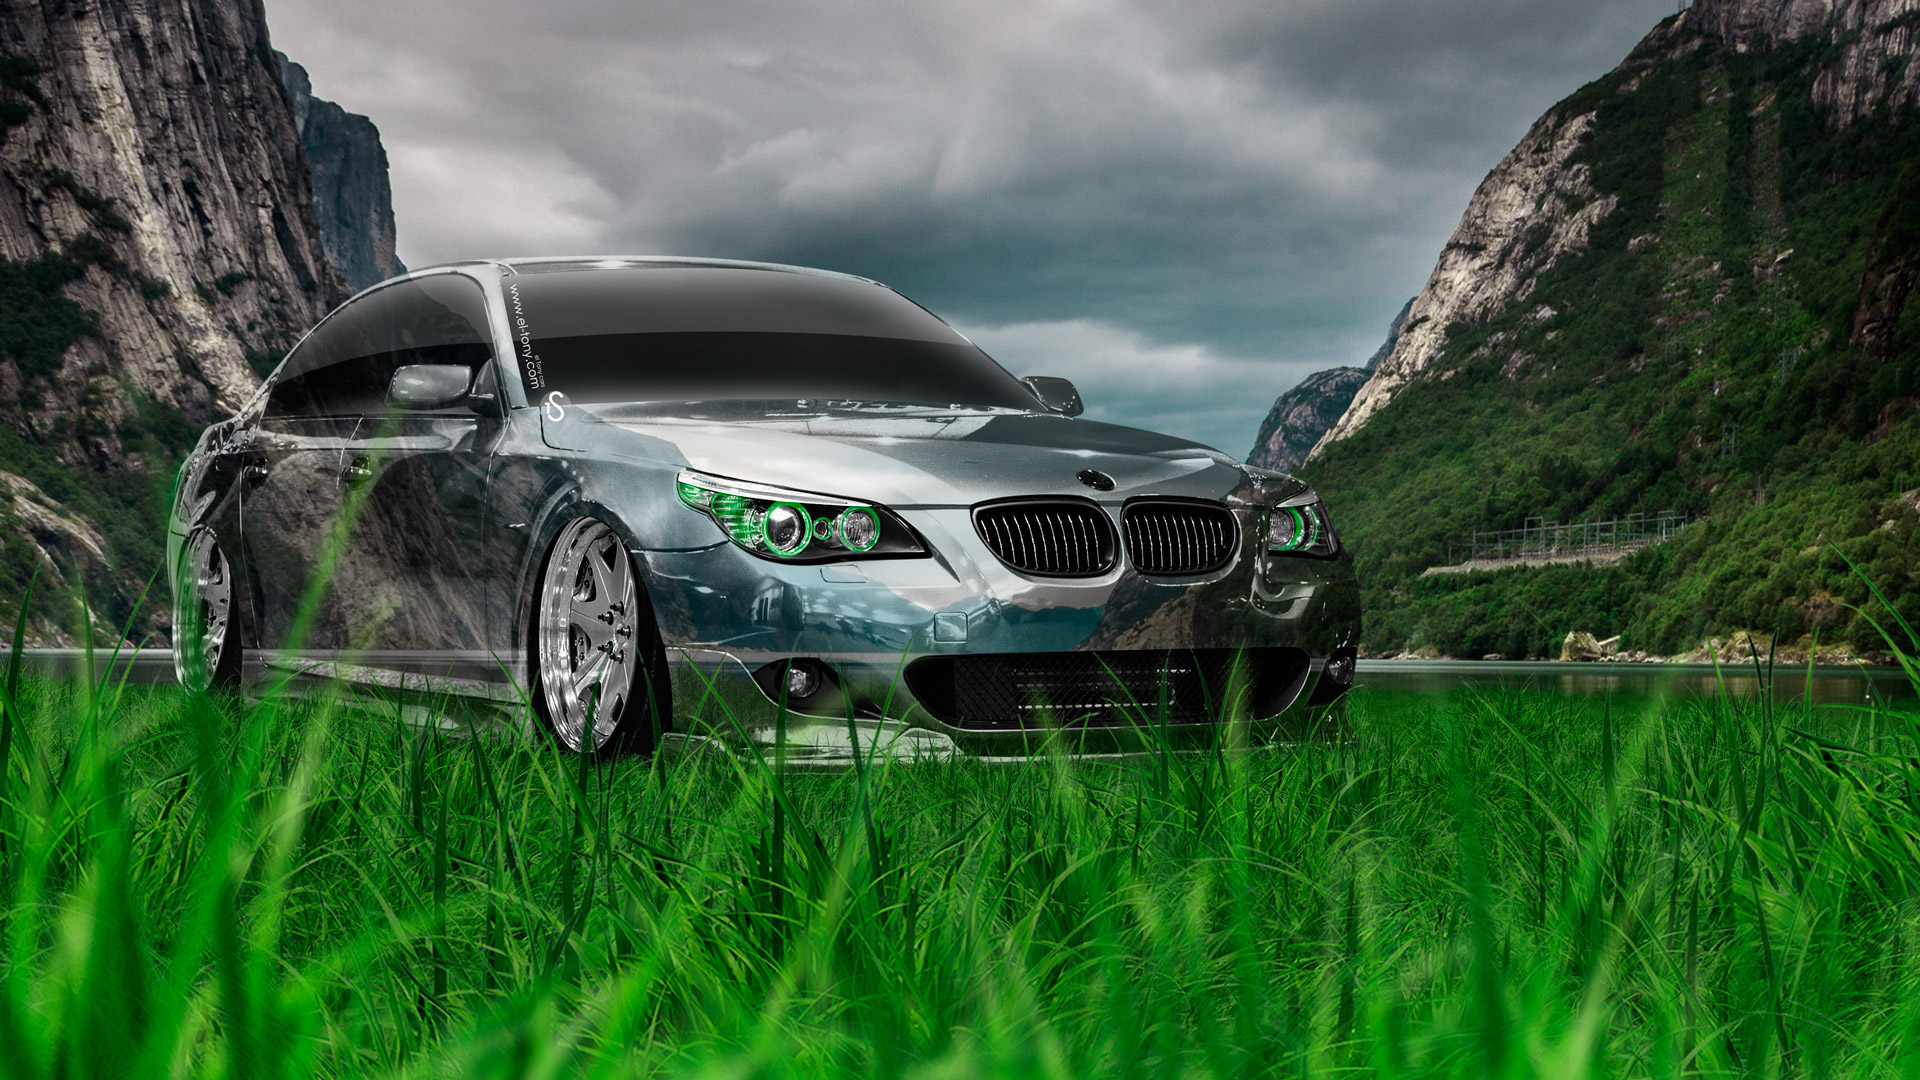 Bmw M5 E60 Tuning Crystal Nature Car 2014 El Tony